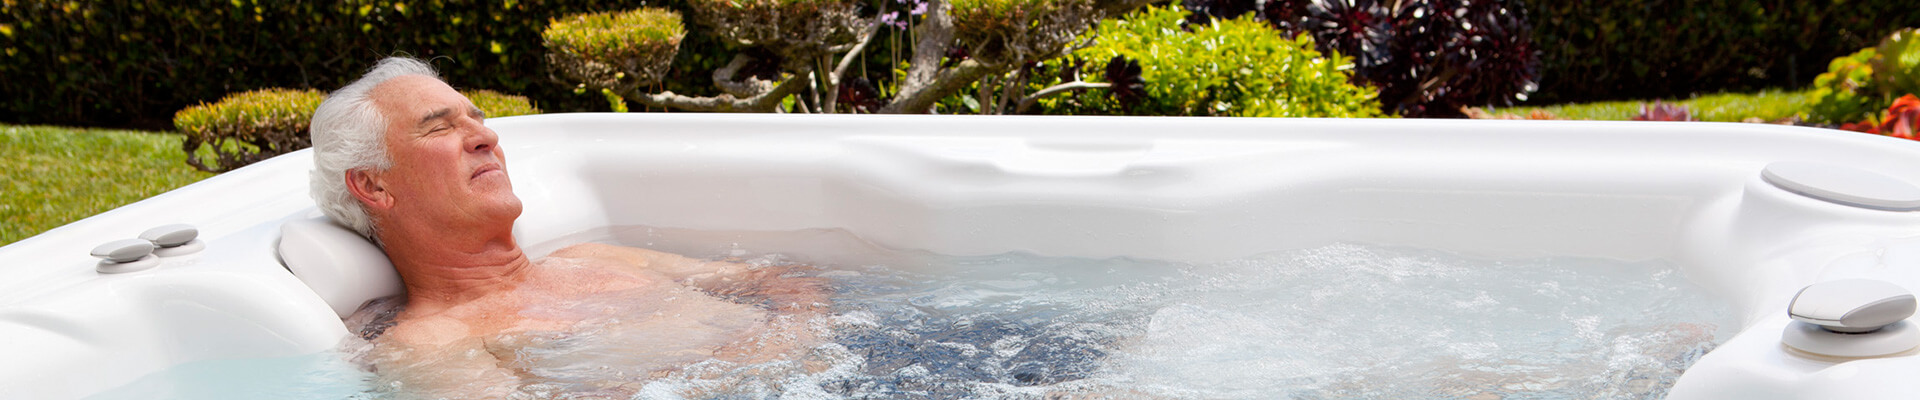 Natural Osteoarthritis Relief in the Spa, Hot Tubs Sedona